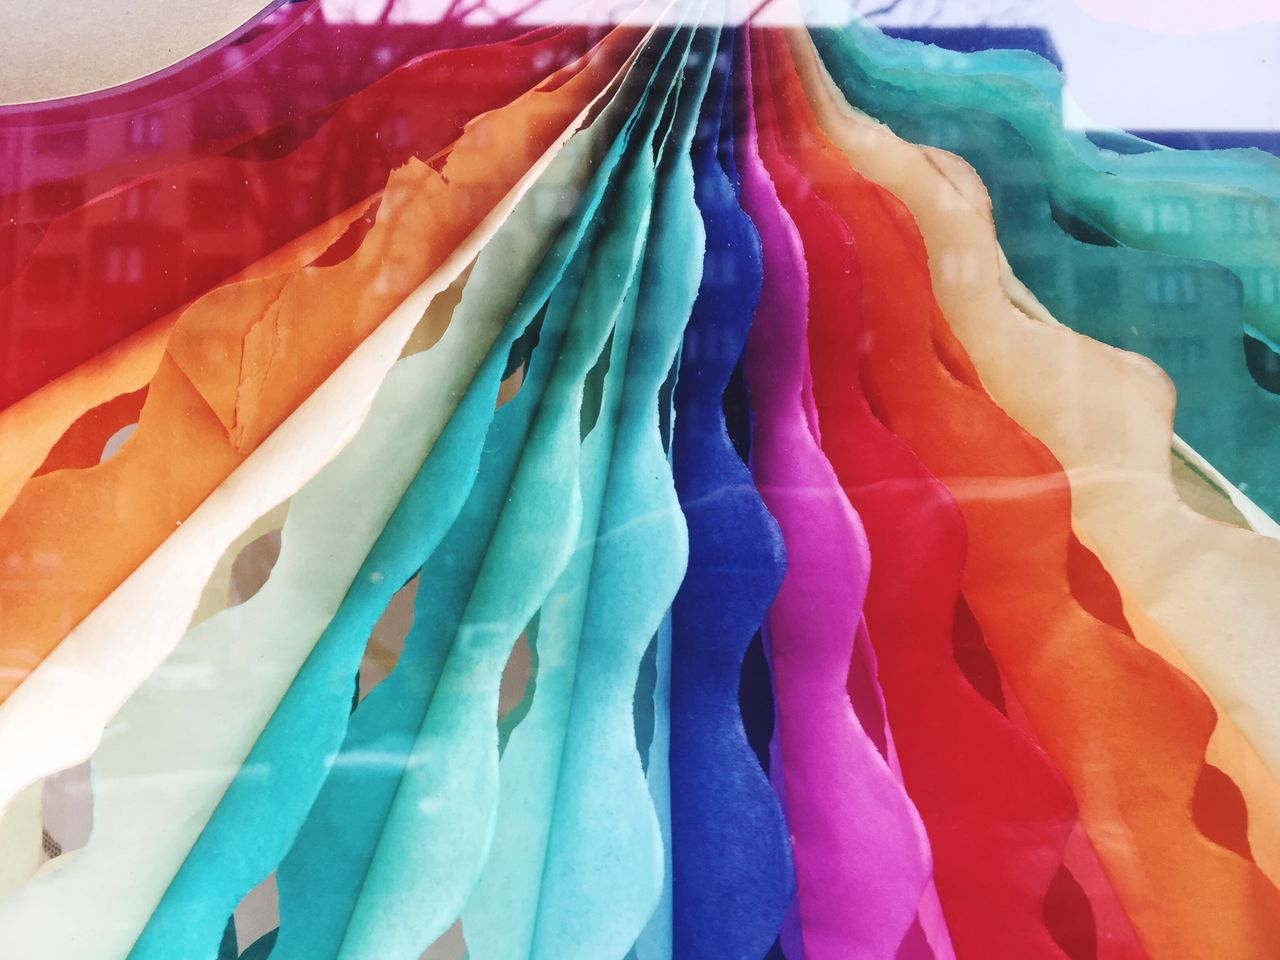 Multi Colored Variation Backgrounds Choice Hanging Full Frame Carnival Party Leisure Activity No People Clothing Store Indoors  Day